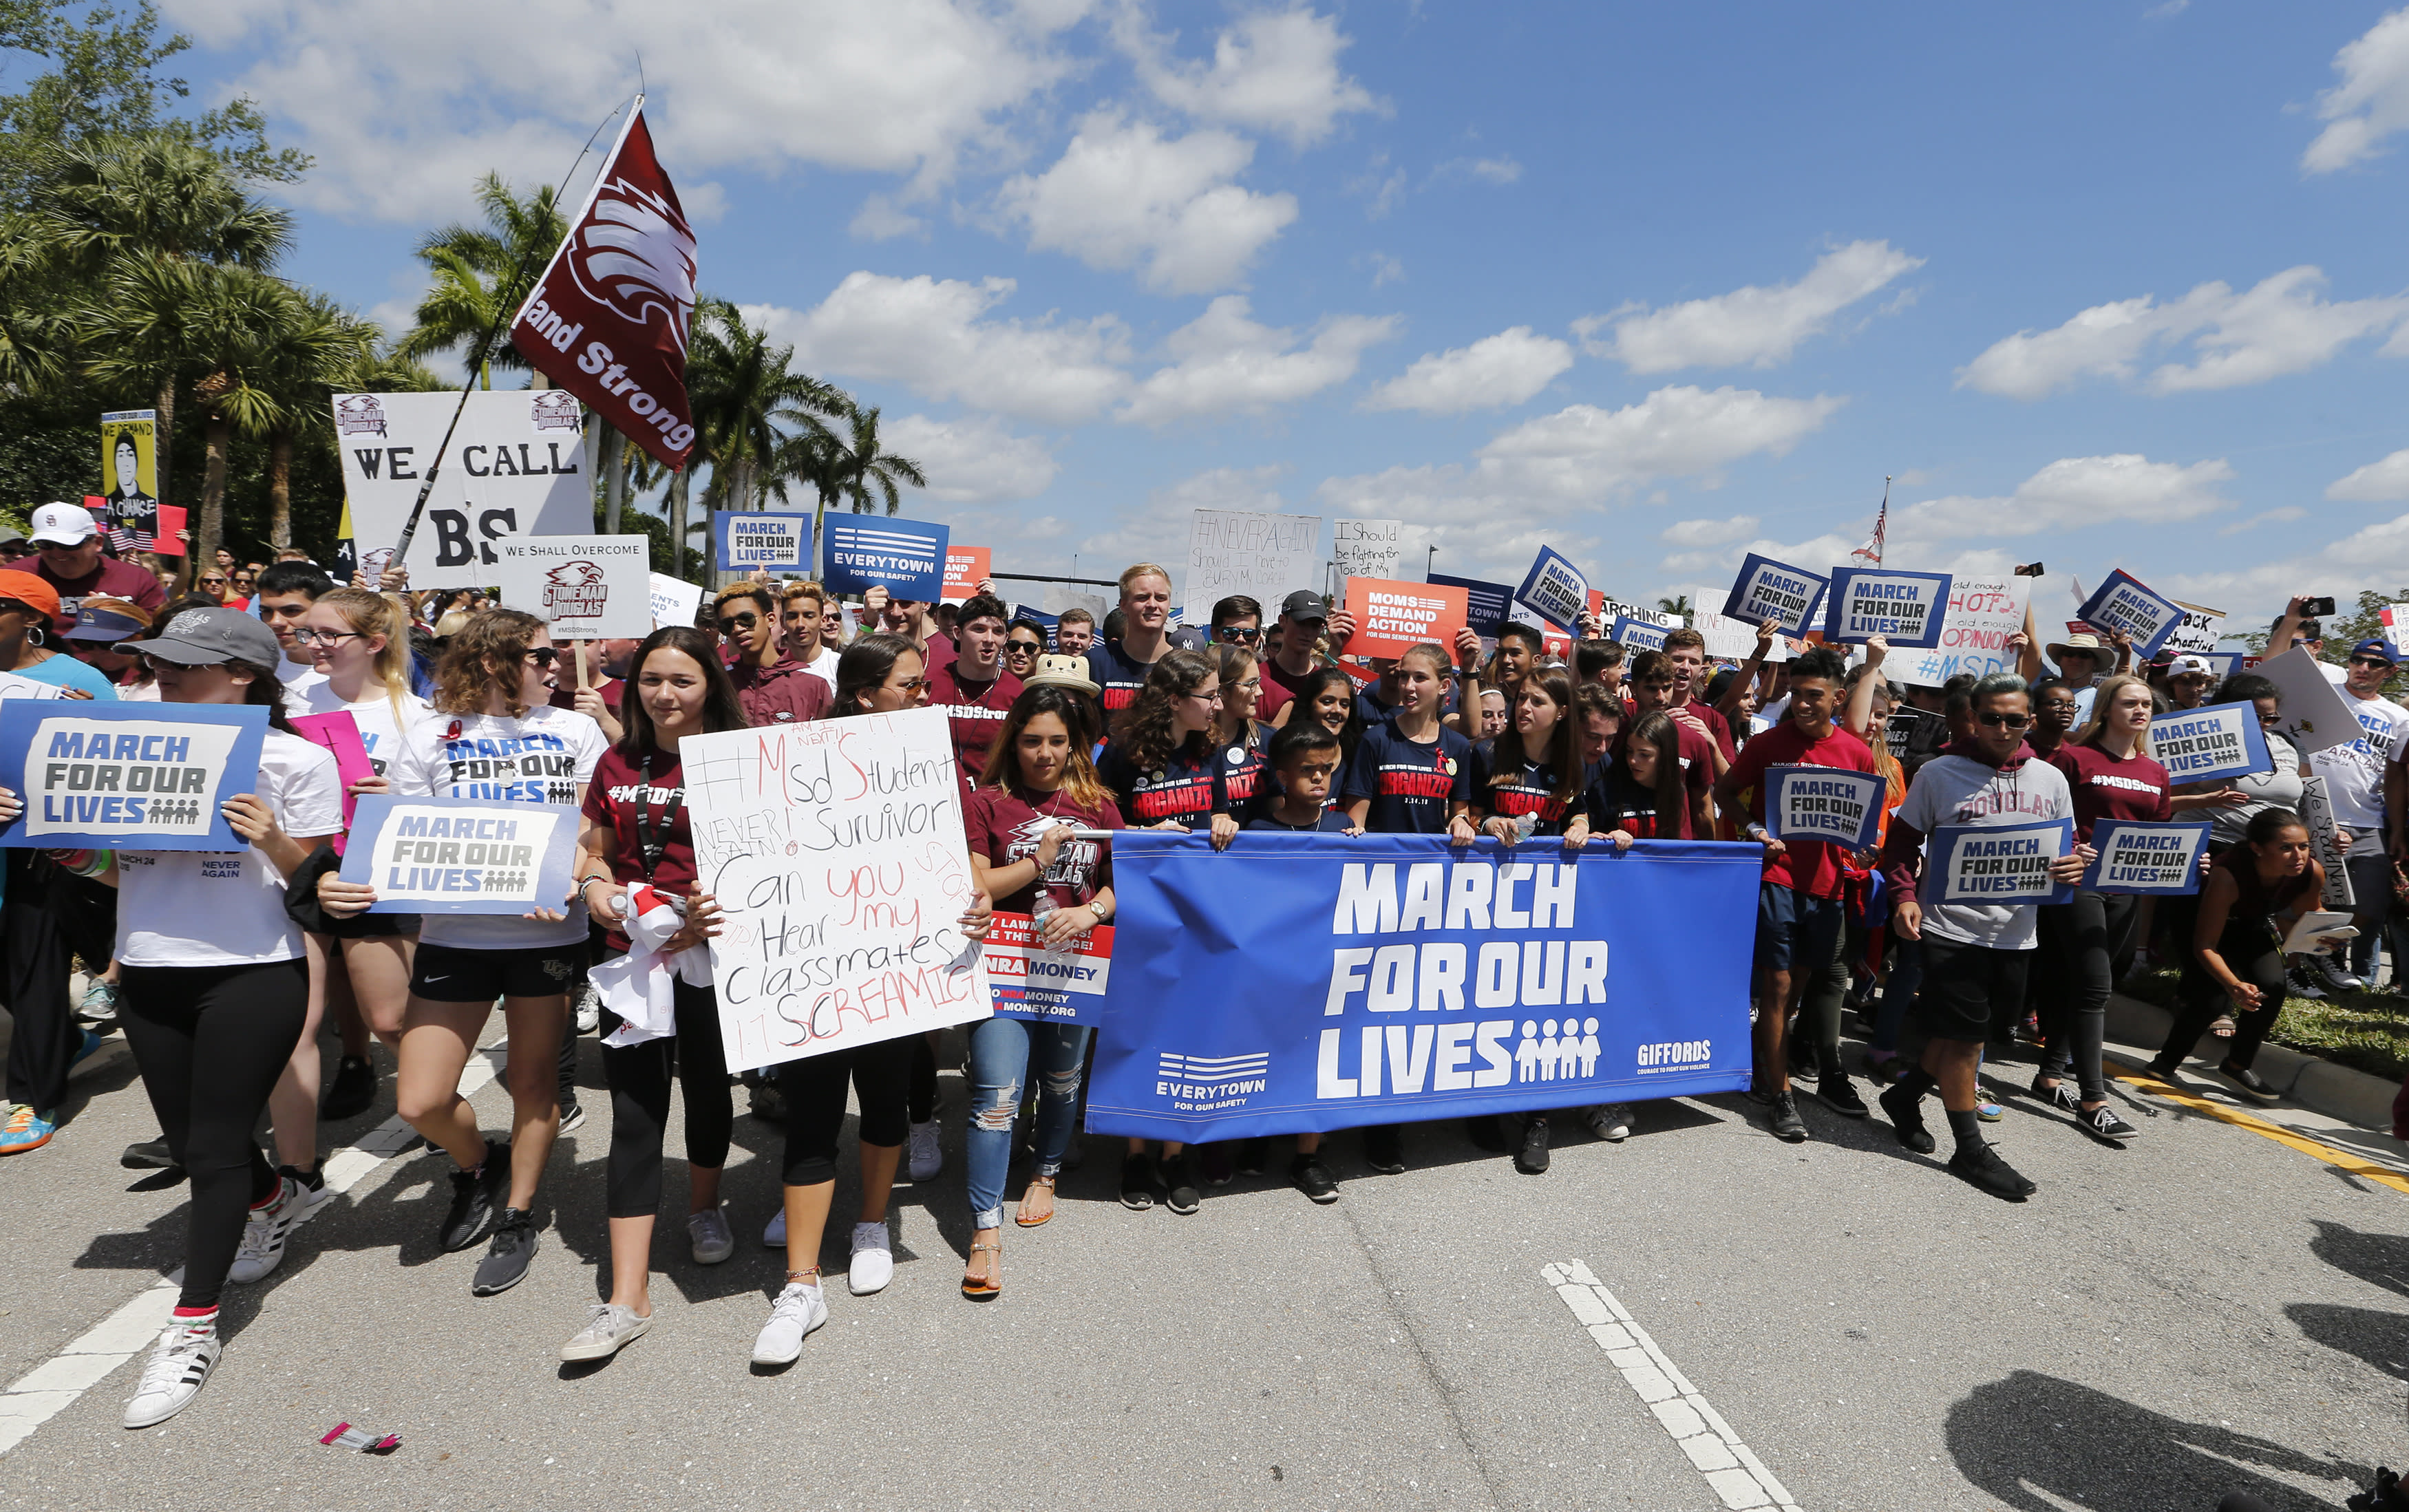 """<p>Marjory Stoneman Douglas High School students take part in a """"March For Our Lives"""" rally in Parkland, Fla. (AP Photo/Joe Skipper) </p>"""